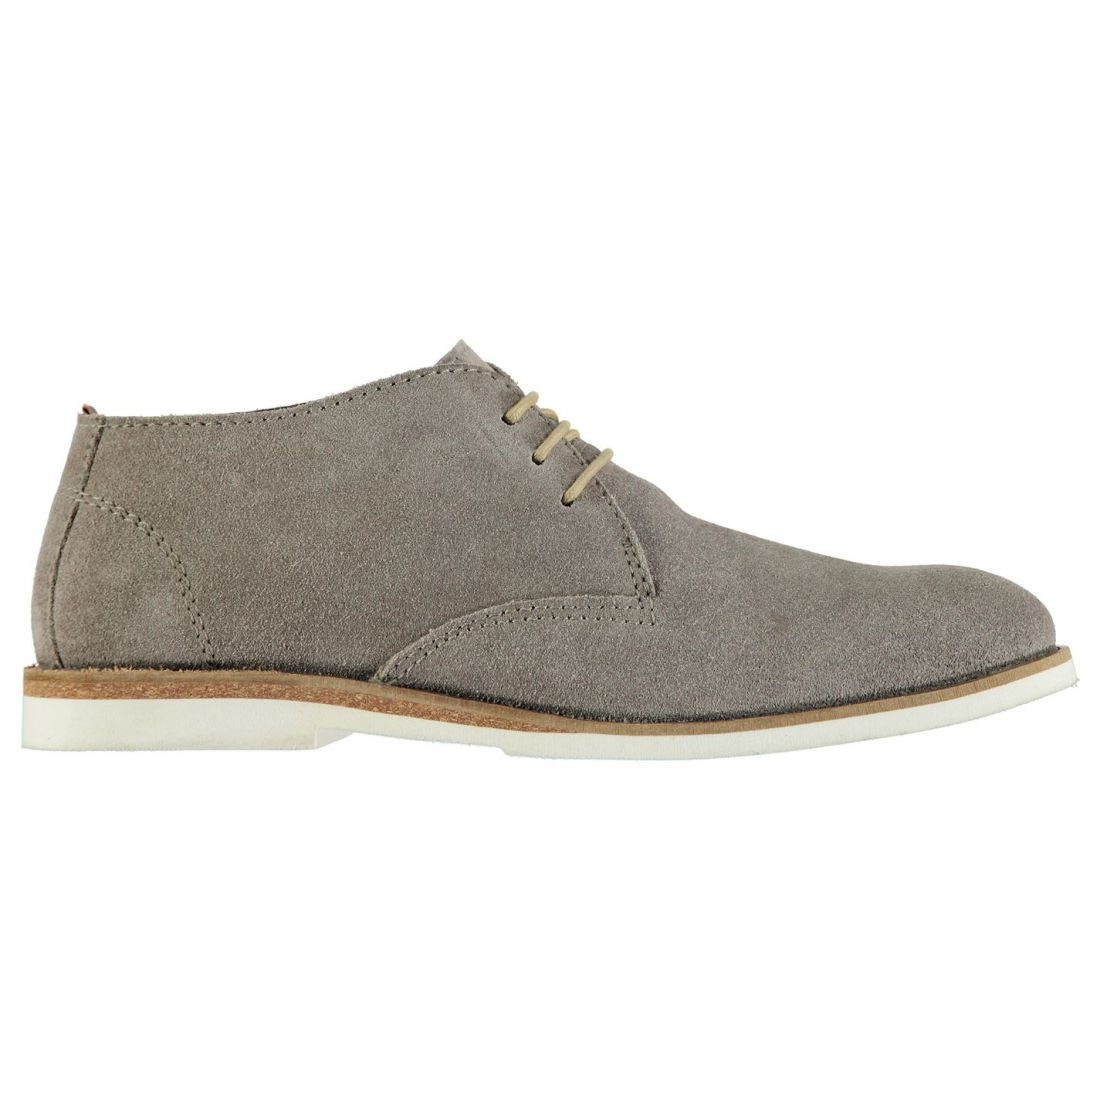 Mens Frank Wright Van shoes Casual shoes New